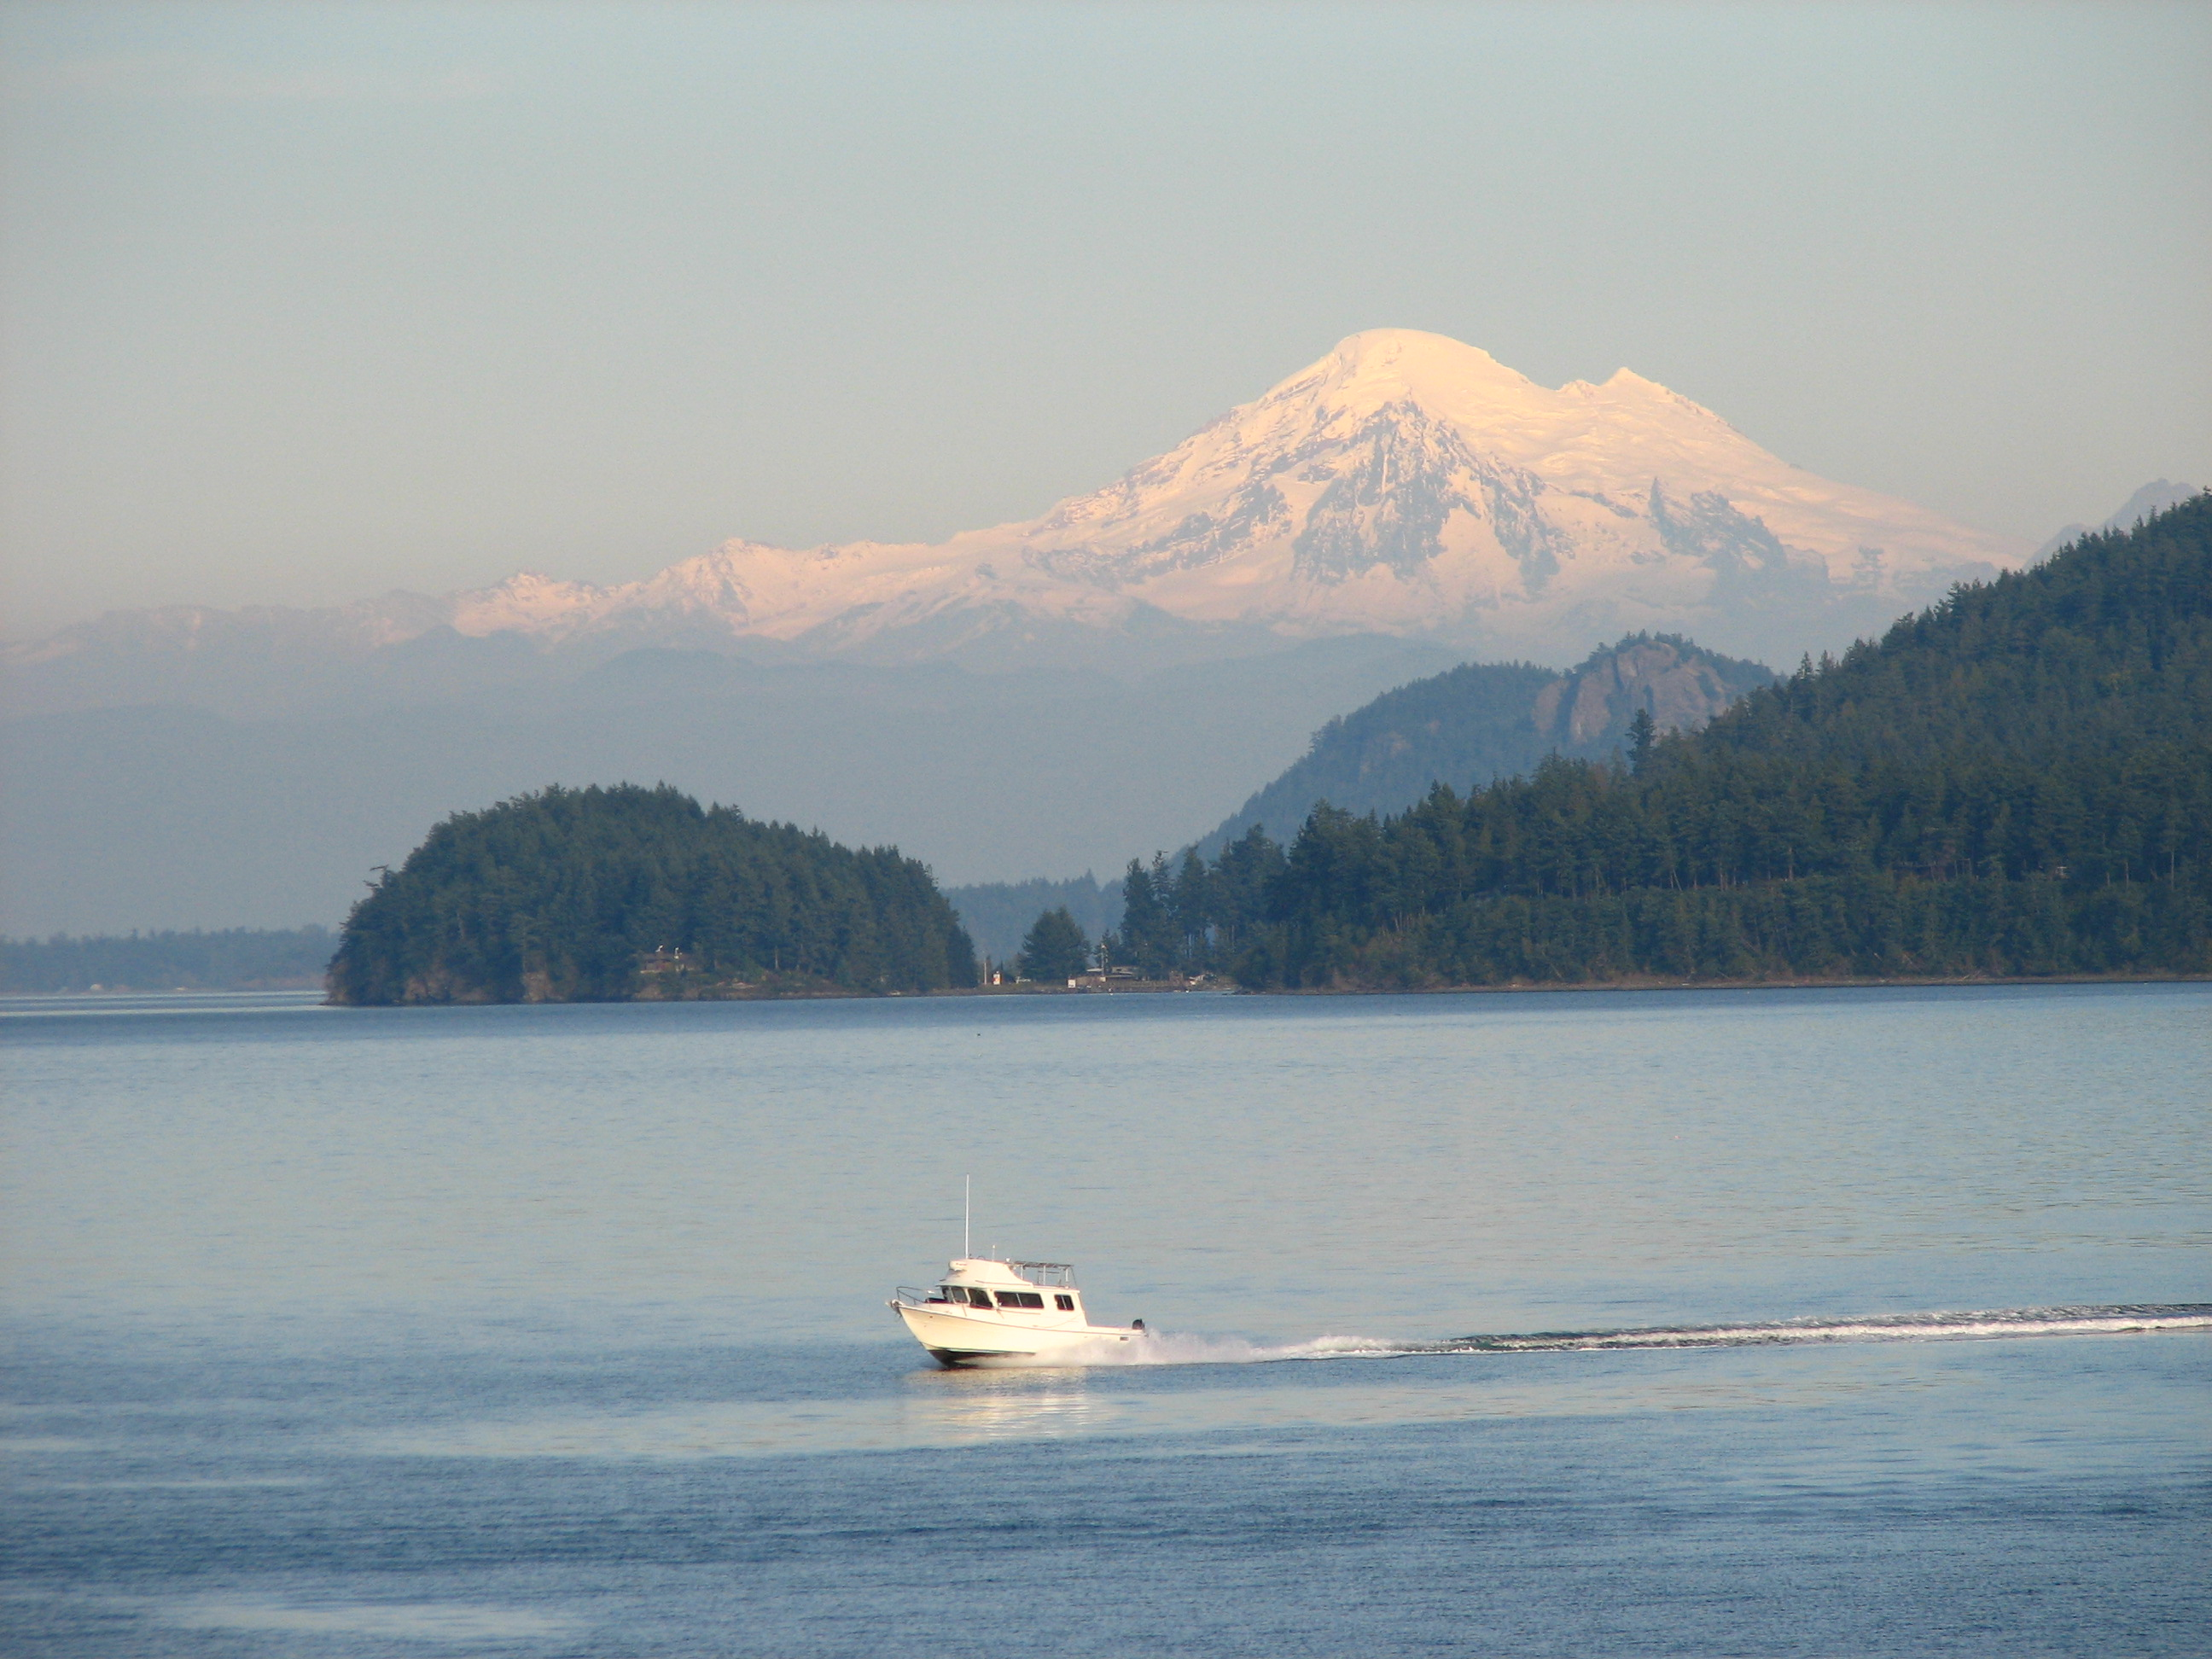 Mt Baker SJ boating scene 5929